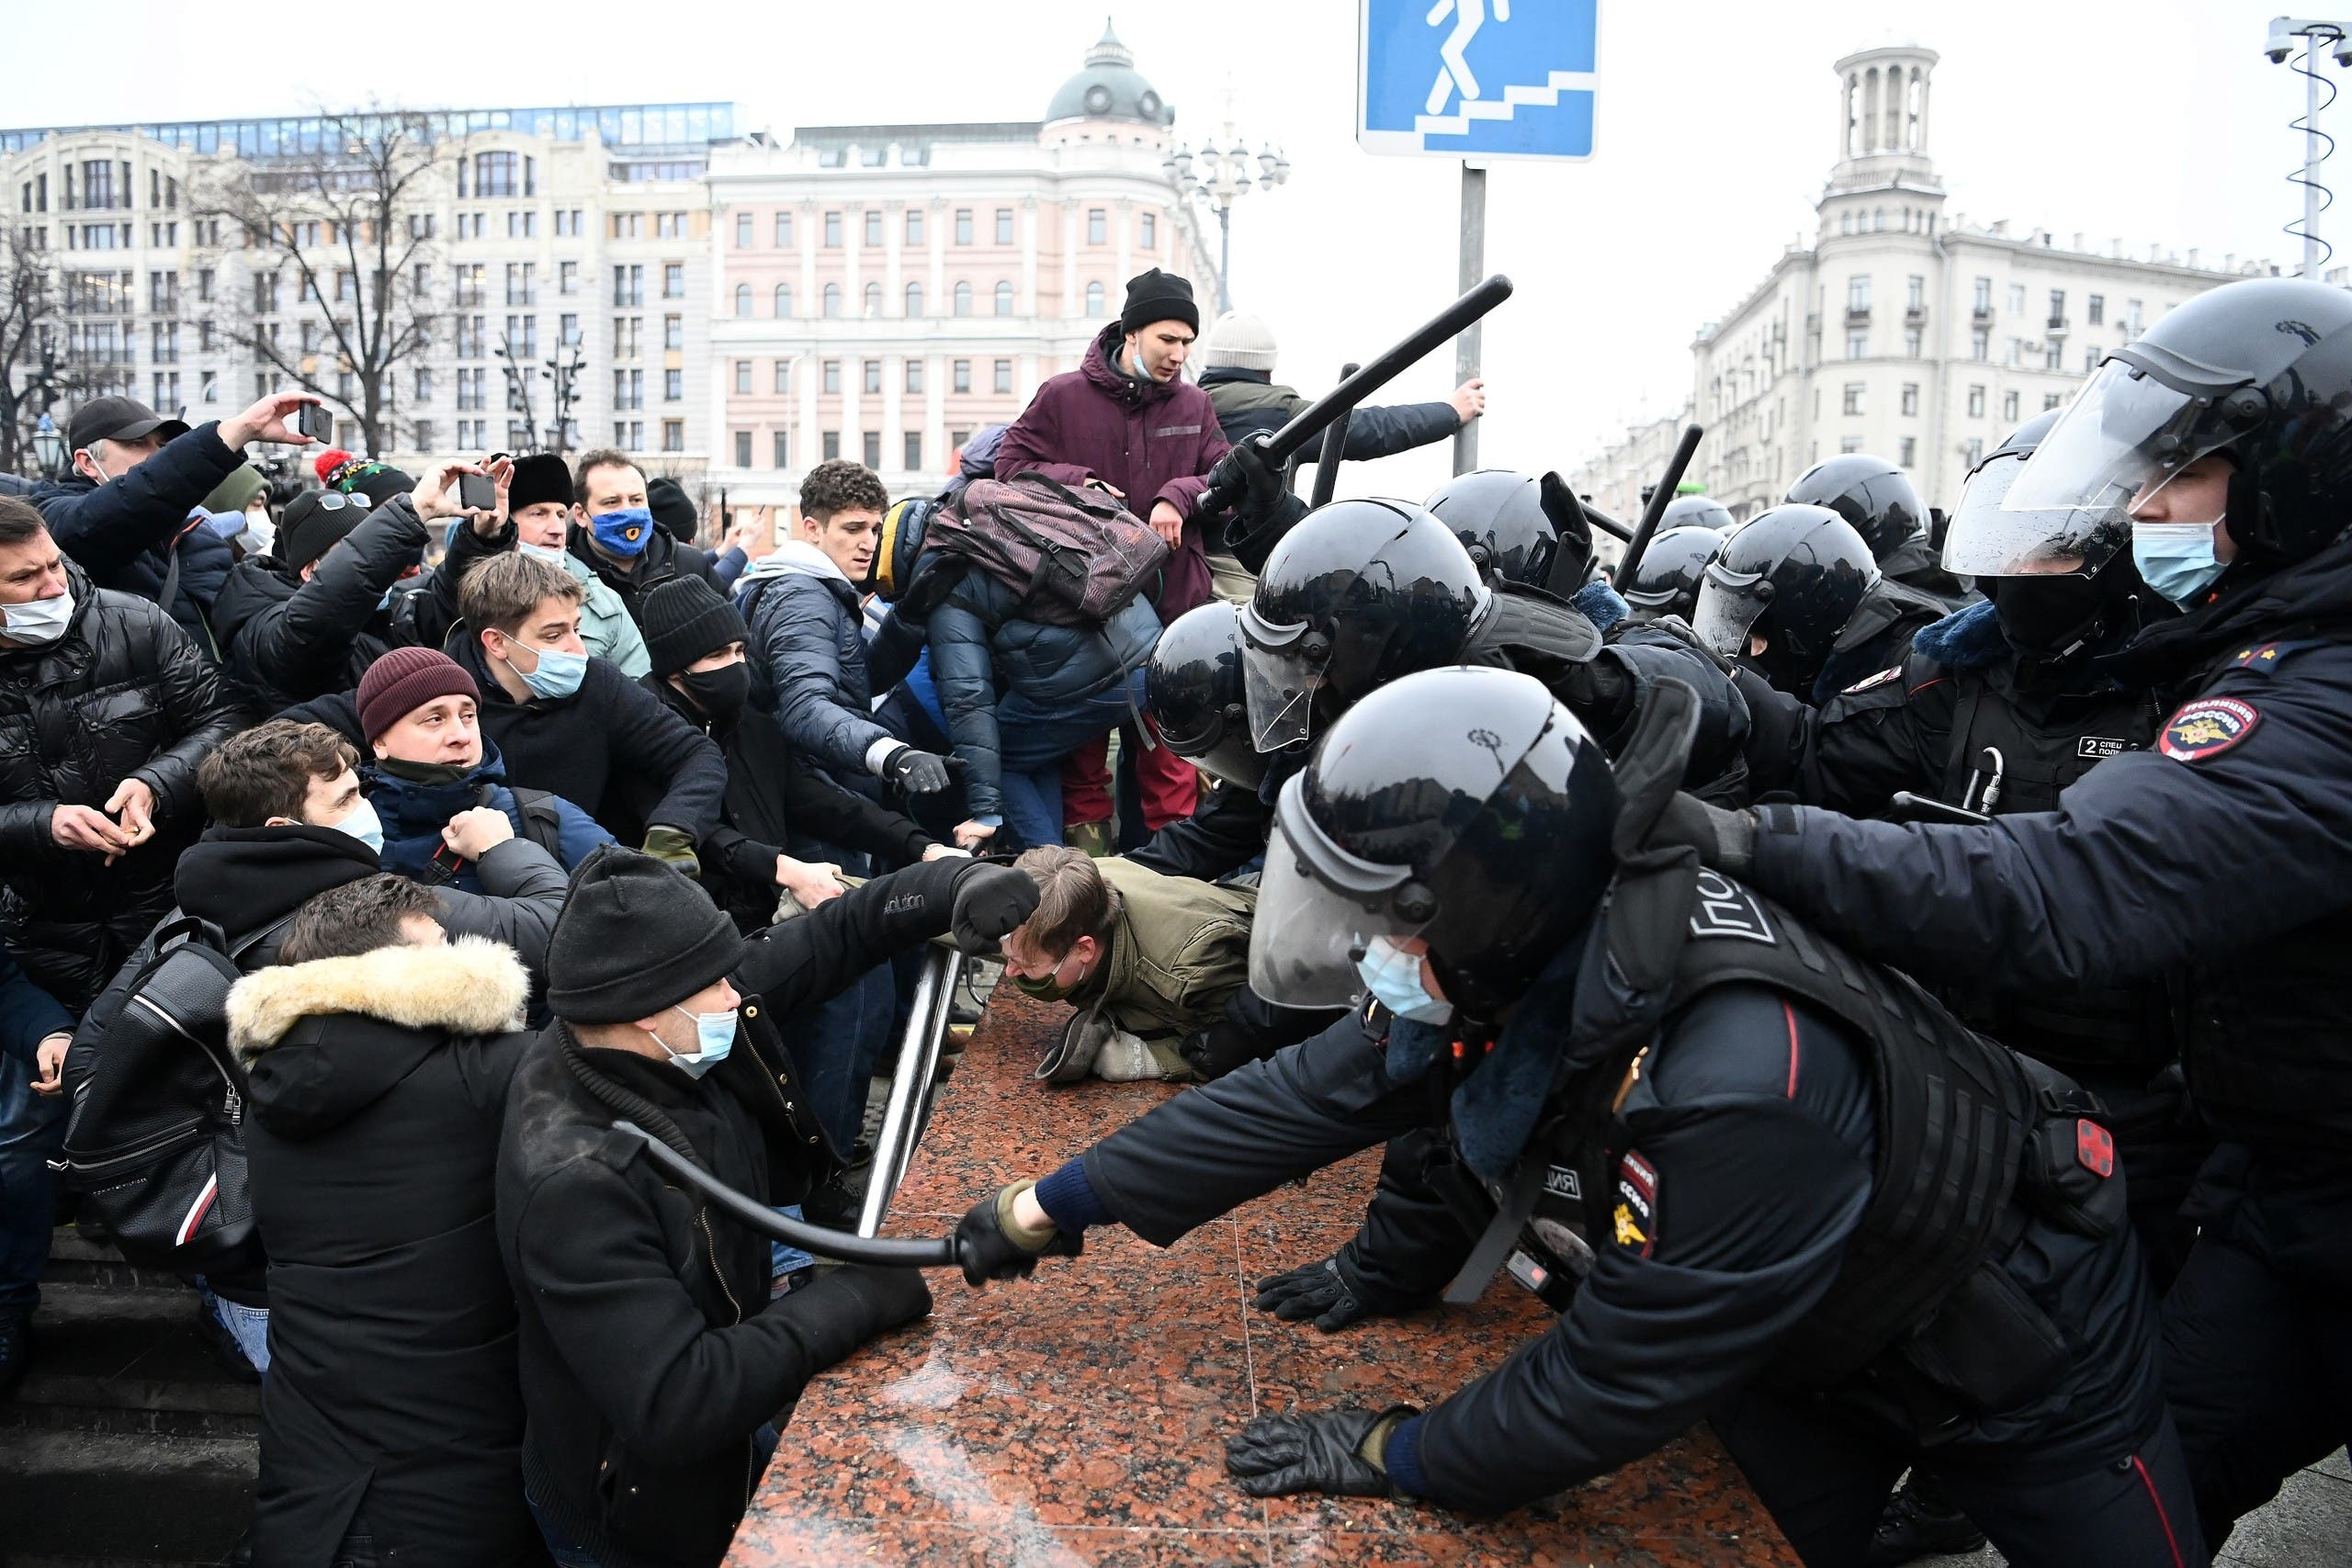 Protesters clash with riot police during a rally in support of jailed opposition leader Alexei Navalny in downtown Moscow on January 23, 2021. (File photo)